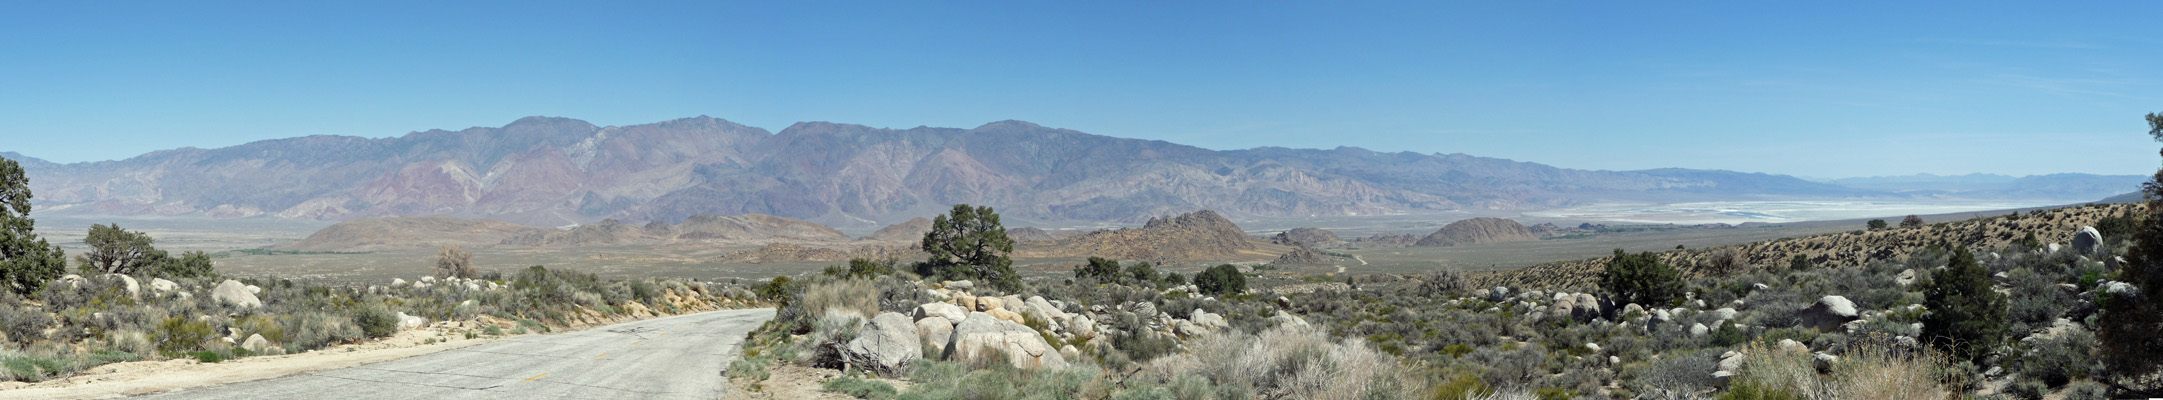 Owens Valley from Whitney Portal Road Lone Pine CA